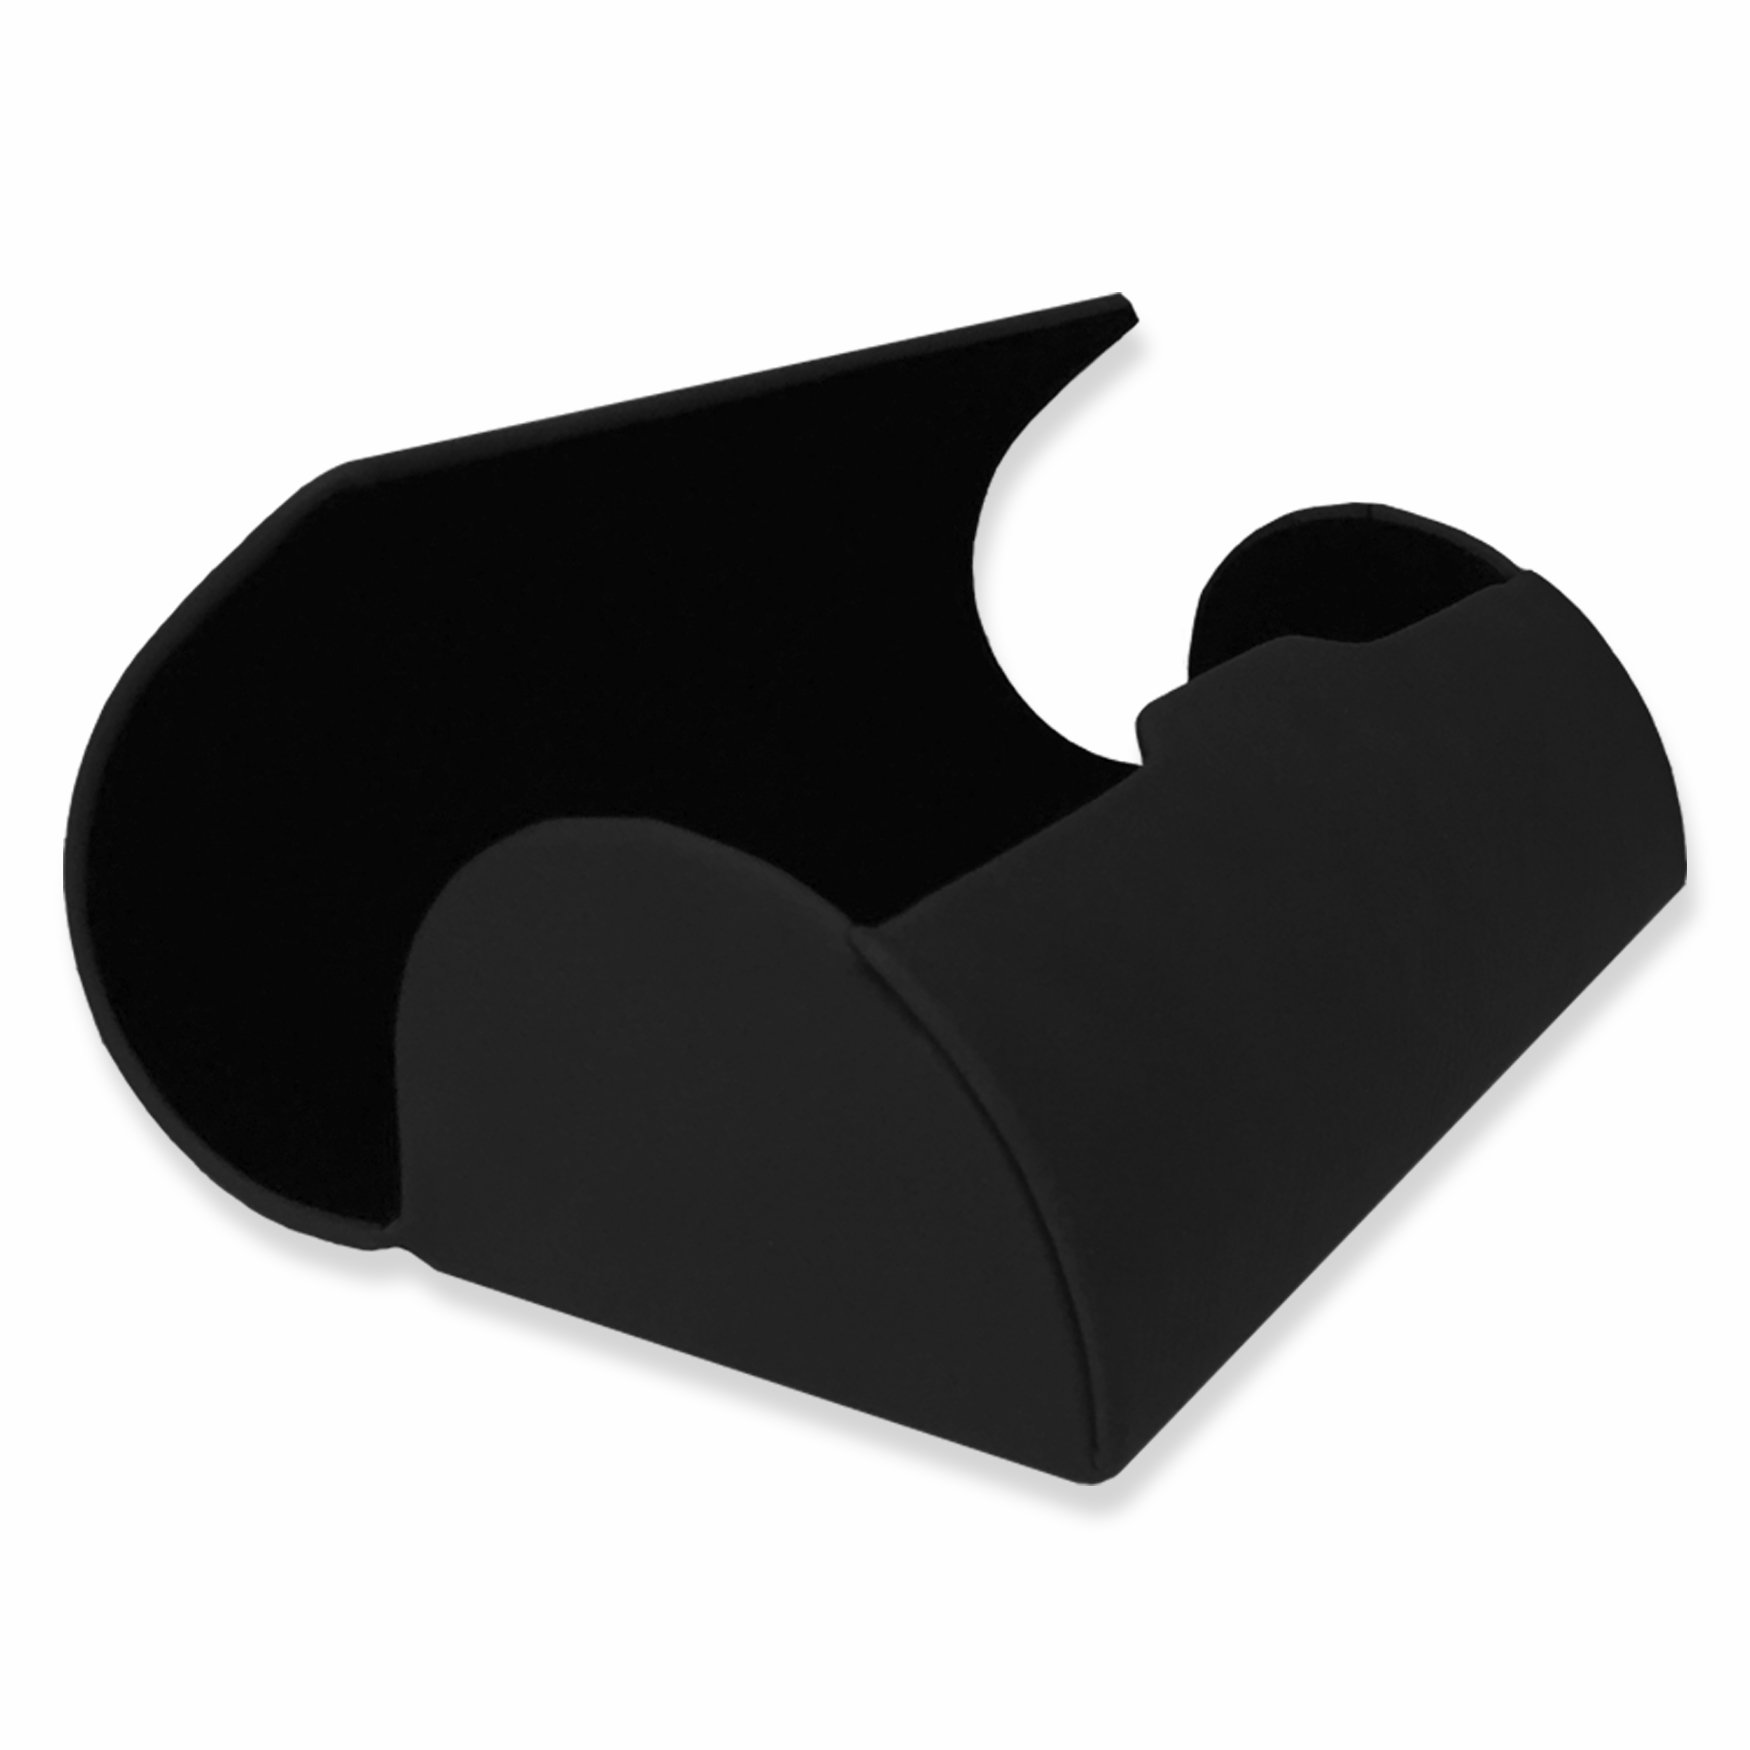 Sunglass Case, Sign Language I Love You, Personalized Engraving Included (Black) by SkunkWerkz (Image #3)